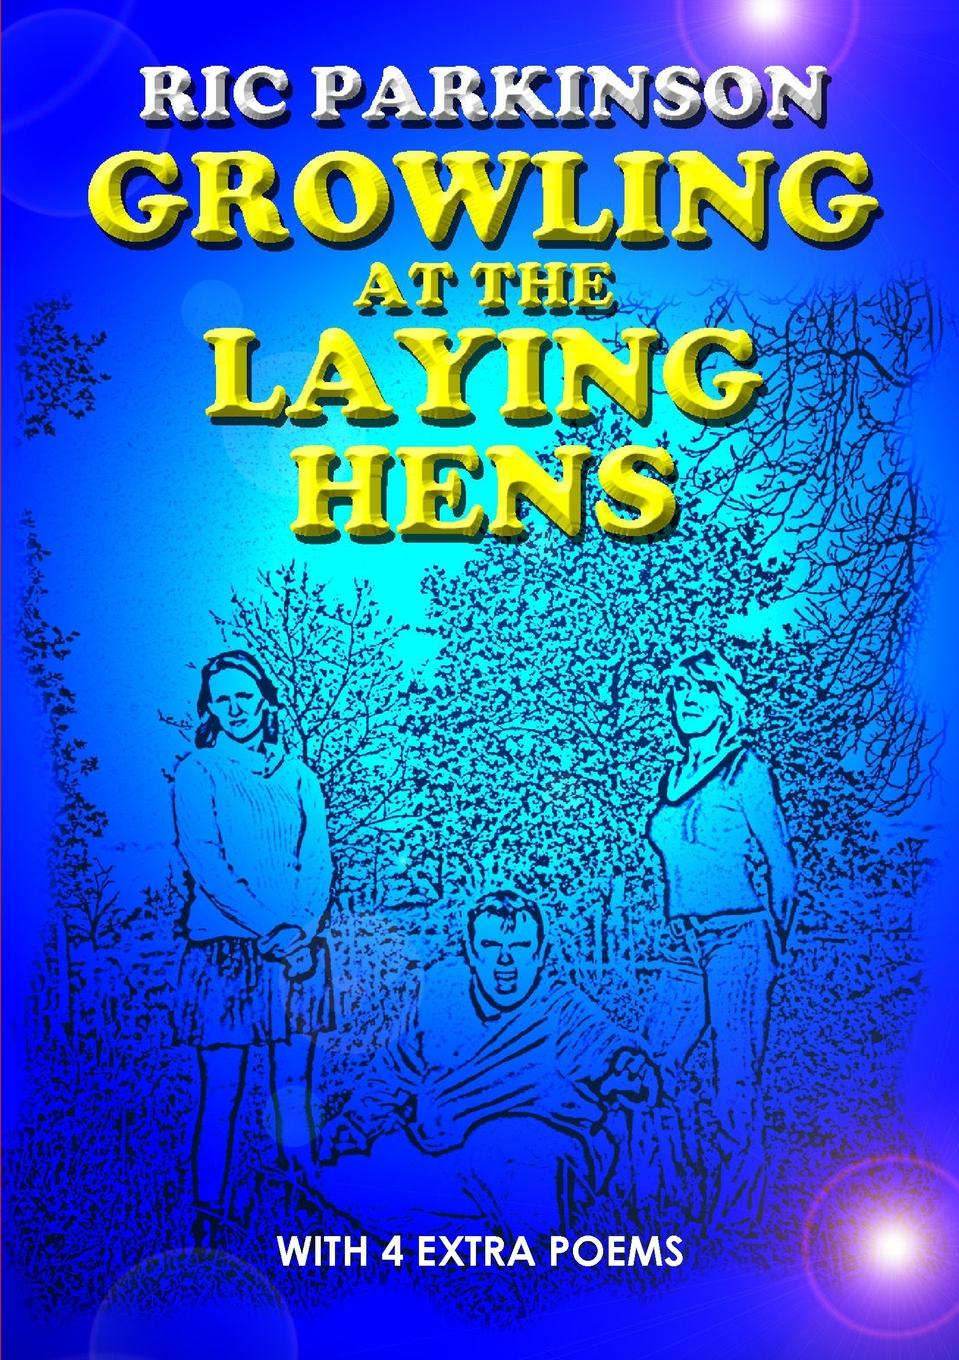 Ric Parkinson Growling at the Laying Hens (New Edition with 4 Extra Poems) productivity and egg quality in commercial brown laying hens